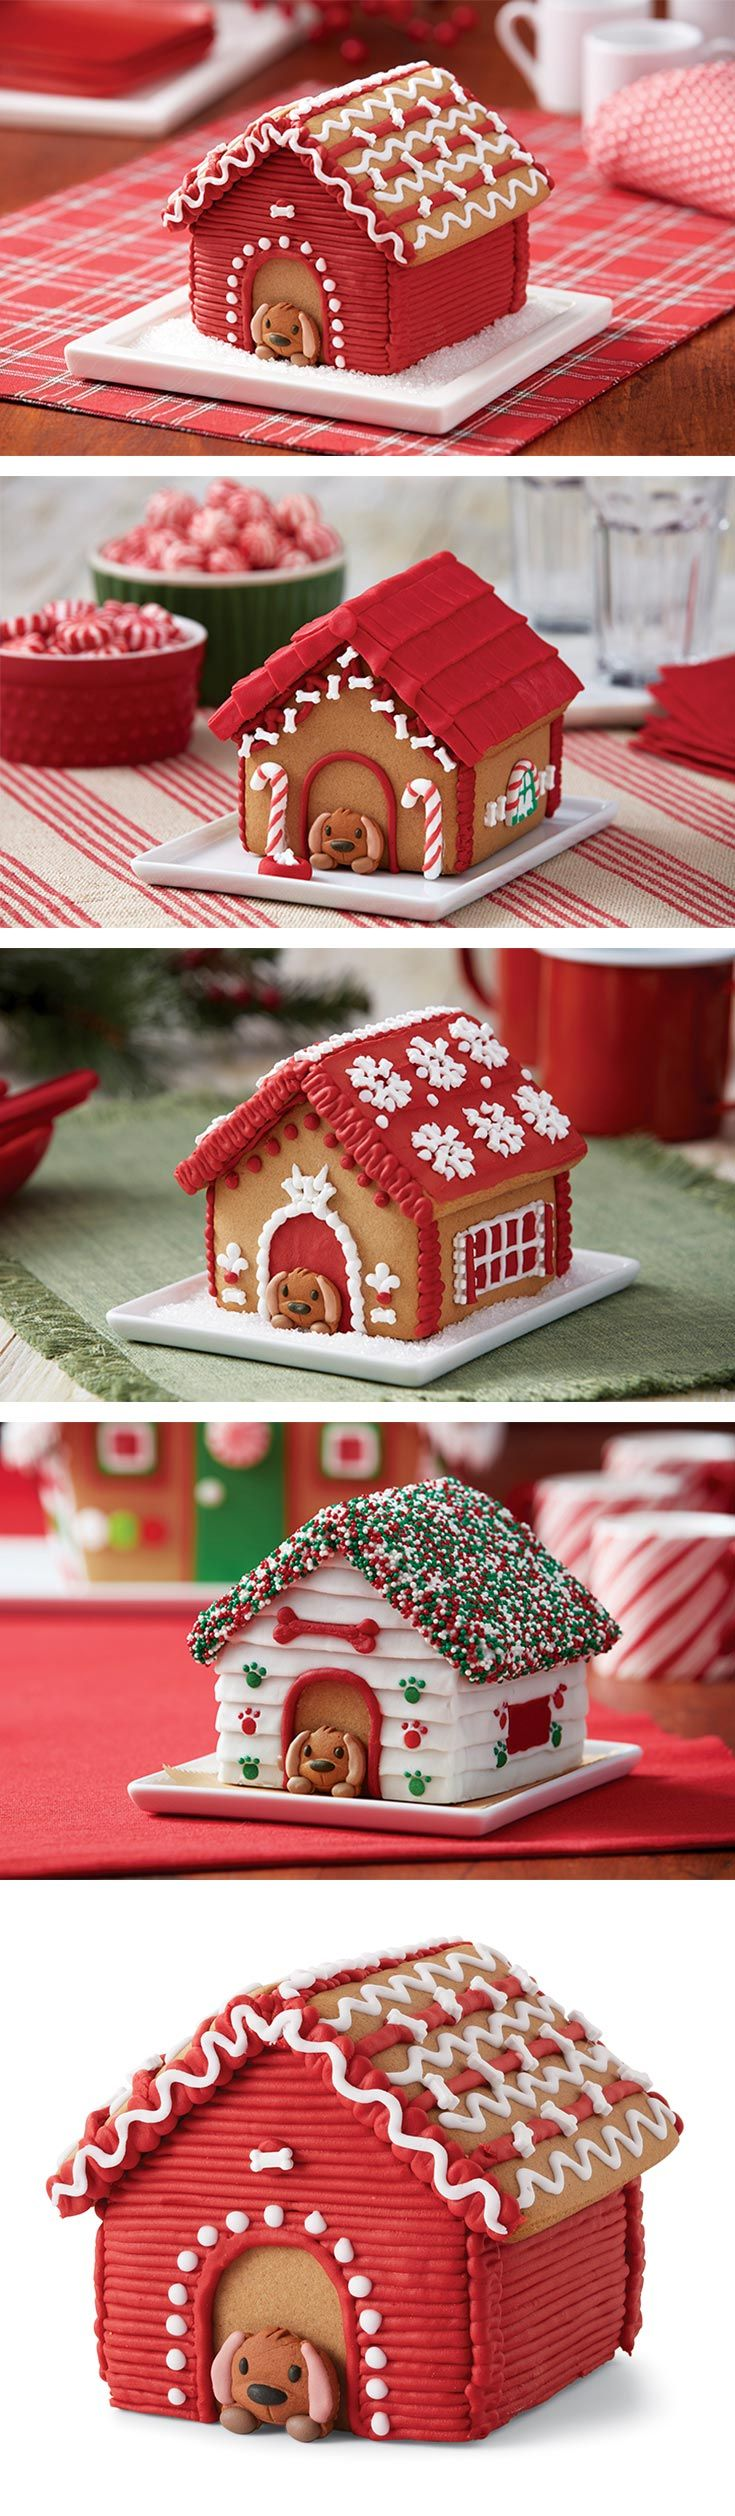 Why do we decorate our houses at christmas - 4 Ways To Decorate Your Gingerbread Dog House